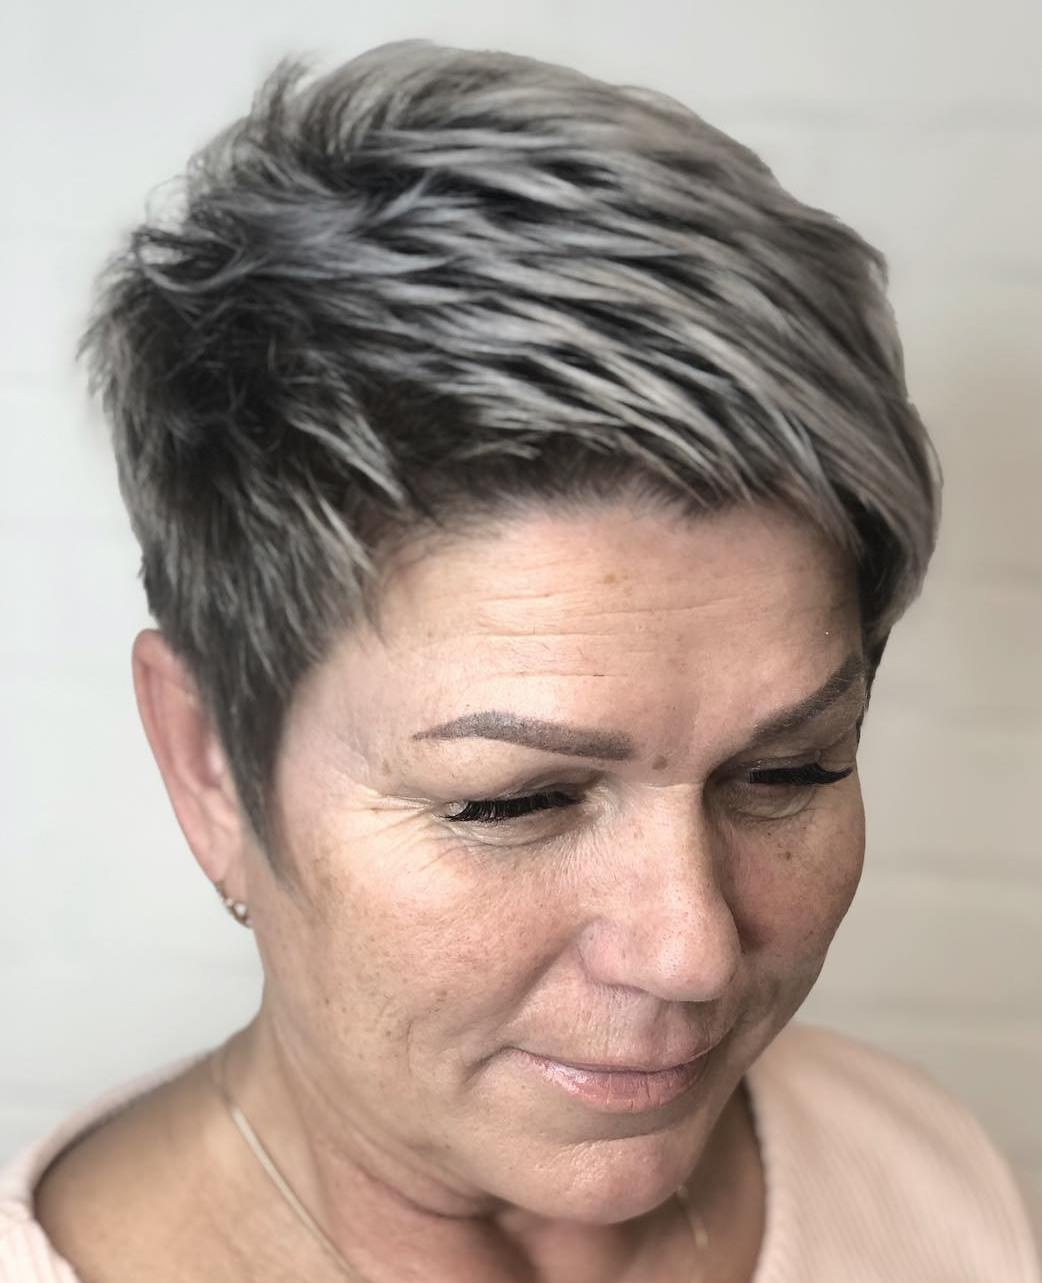 Highlighted Haircut for Short Hair